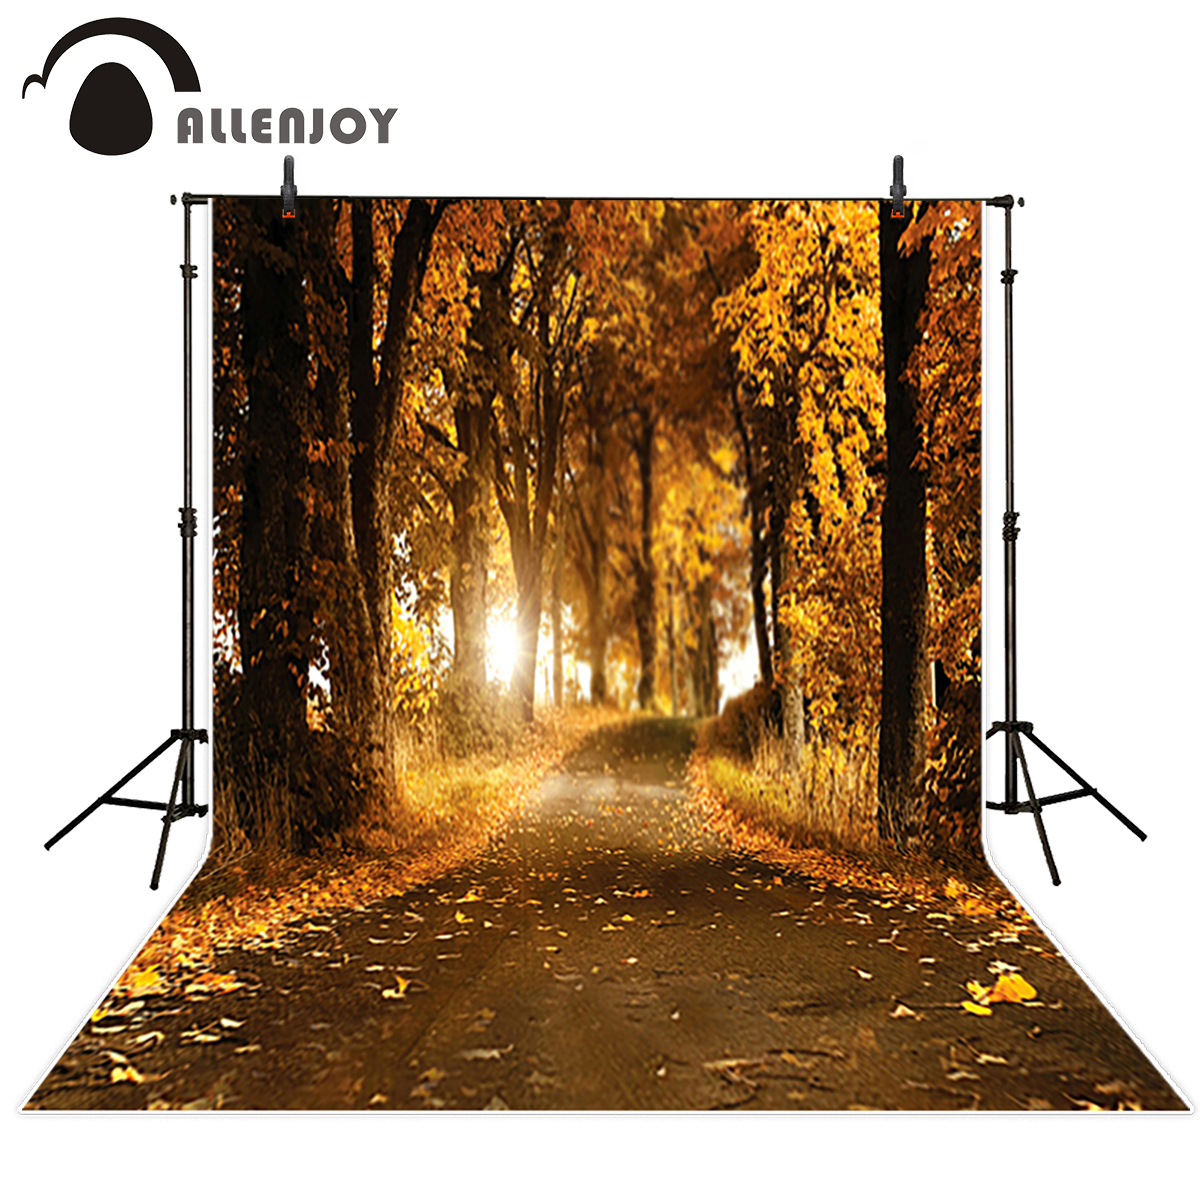 Allenjoy photography backdrop dark autumn yellow tree path leaves natual backgrounds vinyl cloth fabric professional сумка для фотоаппарата hugger tree trunk dark grey